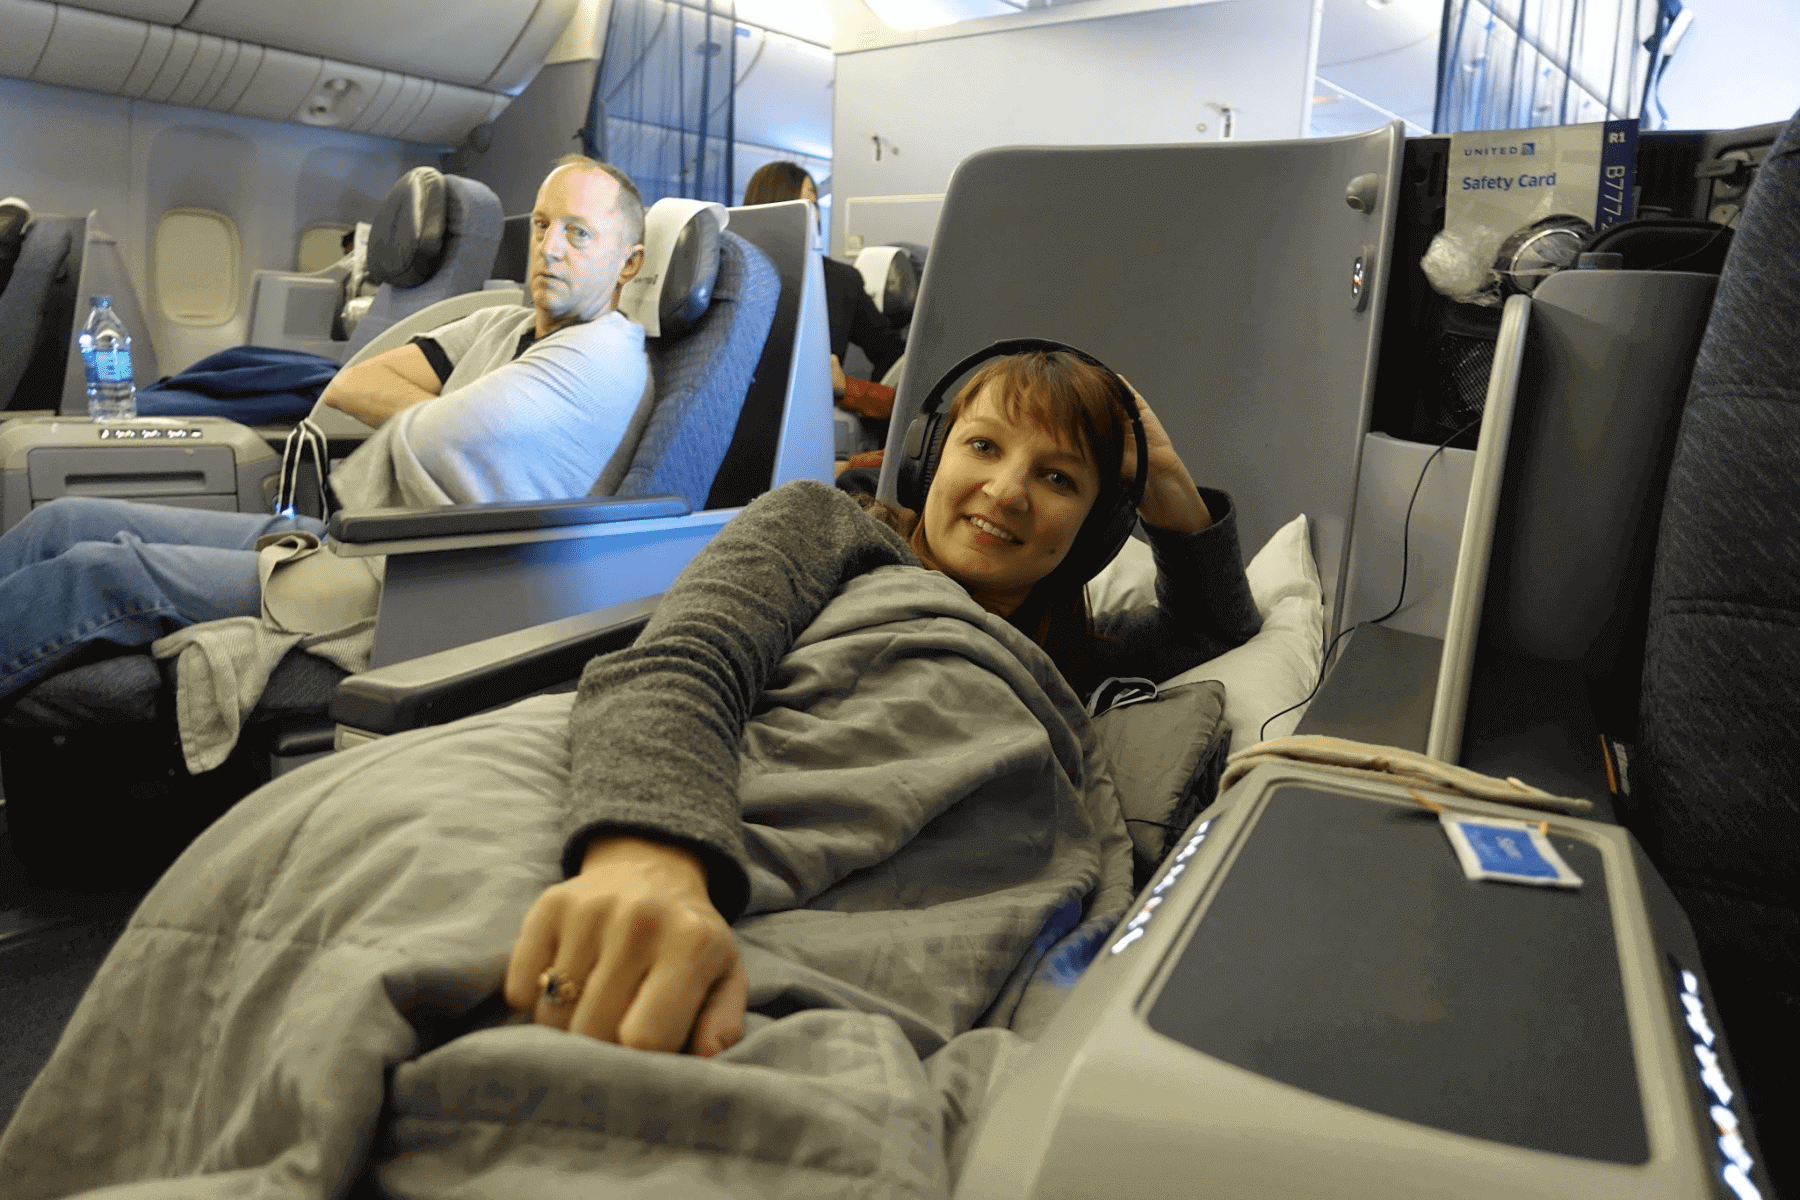 A Family Trip To France On Miles And Points How To Book 4 Flights To Europe In Business Class For 500